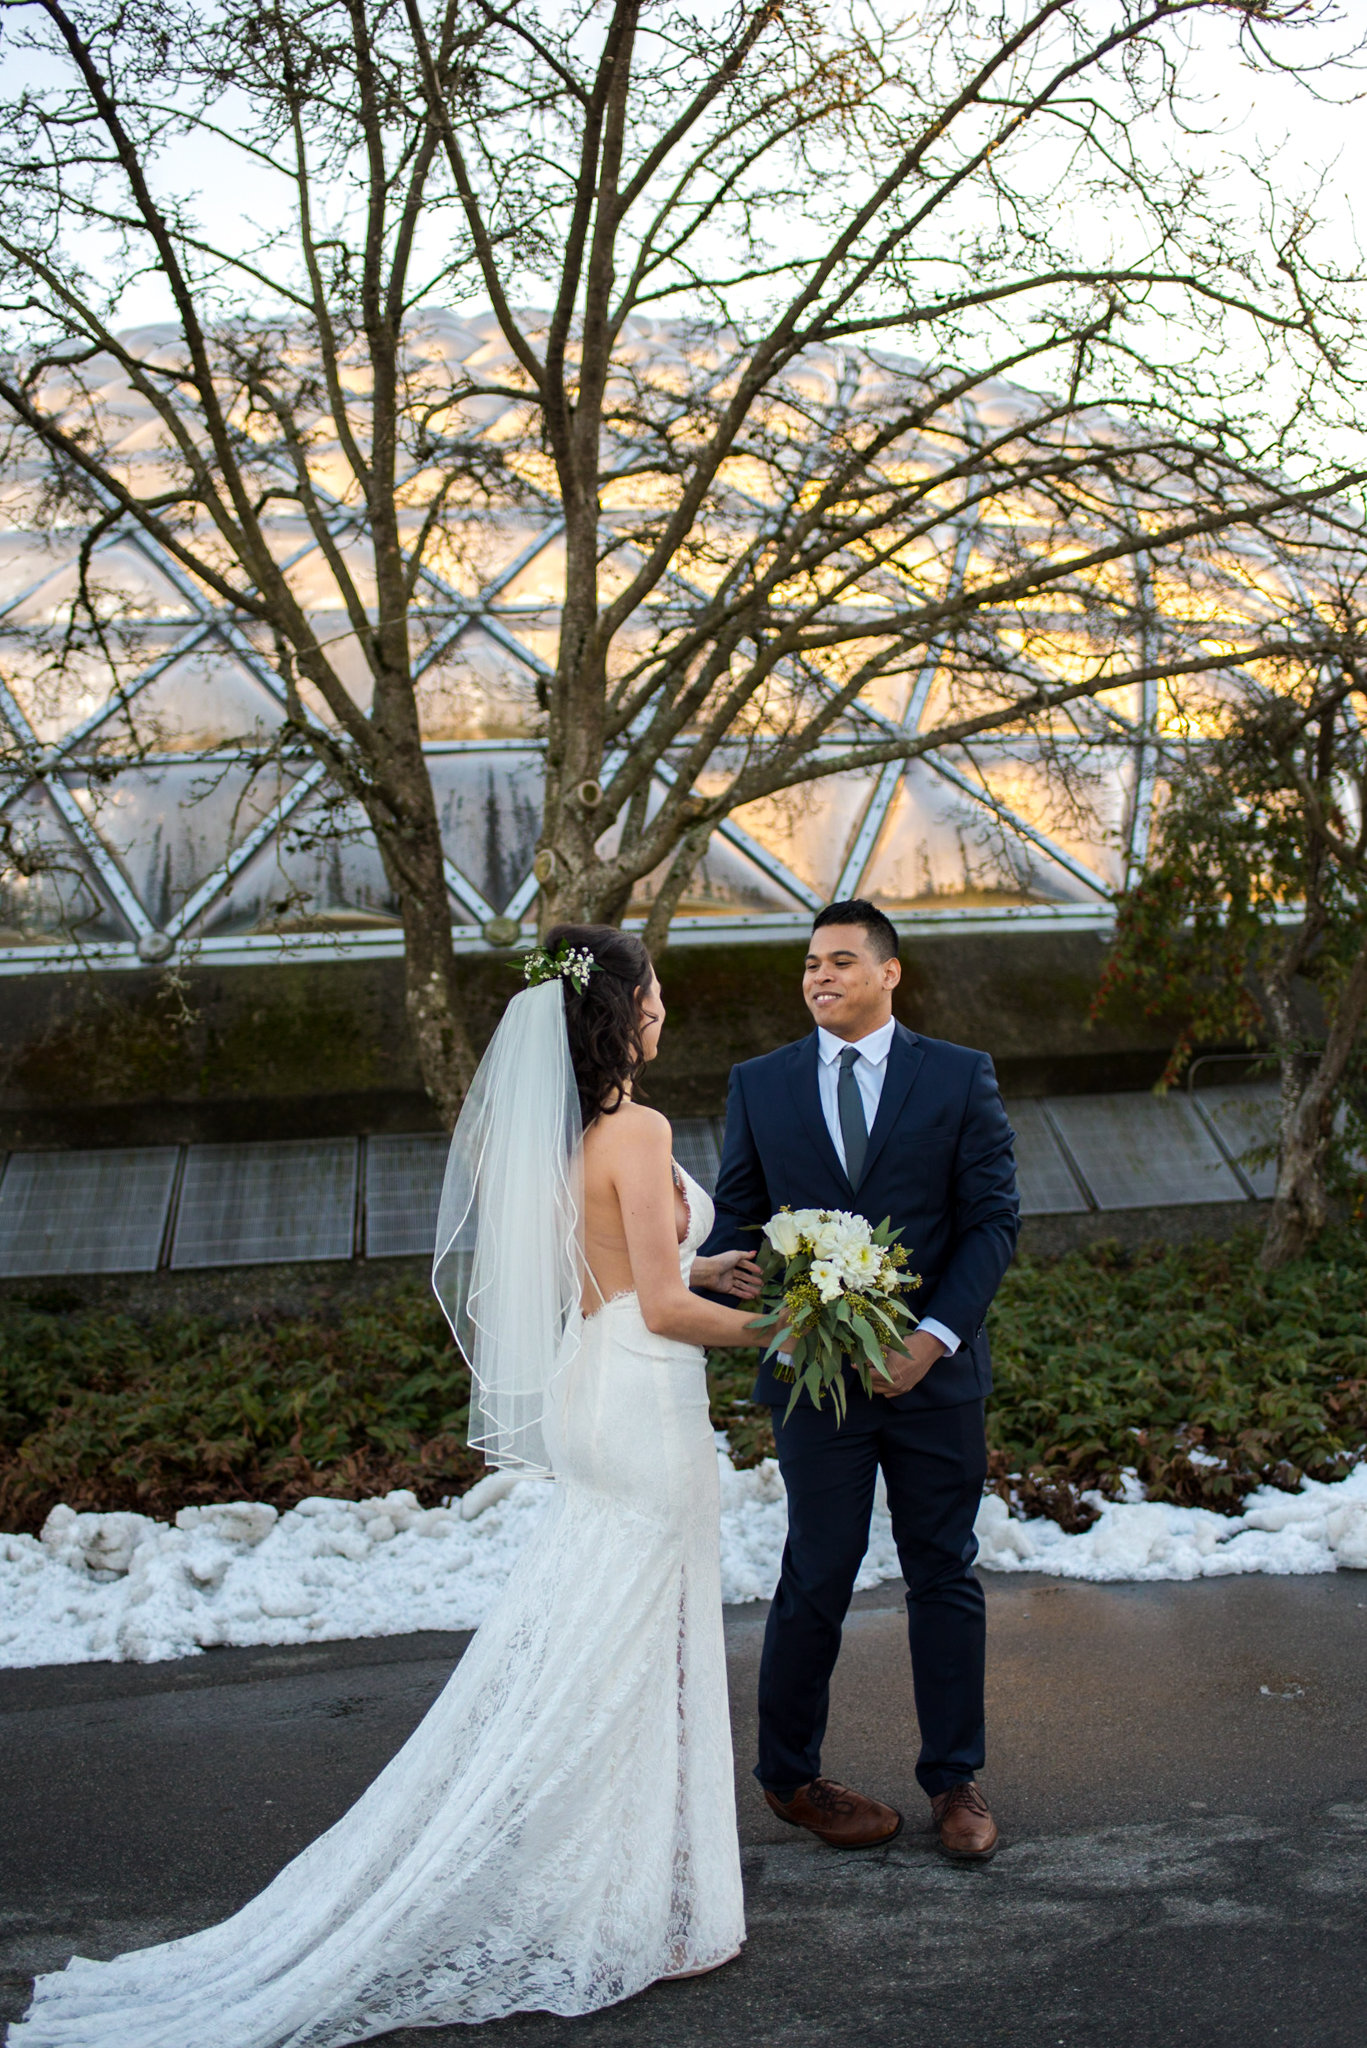 Queen Elizabeth Park Wedding Photographer-9.jpg